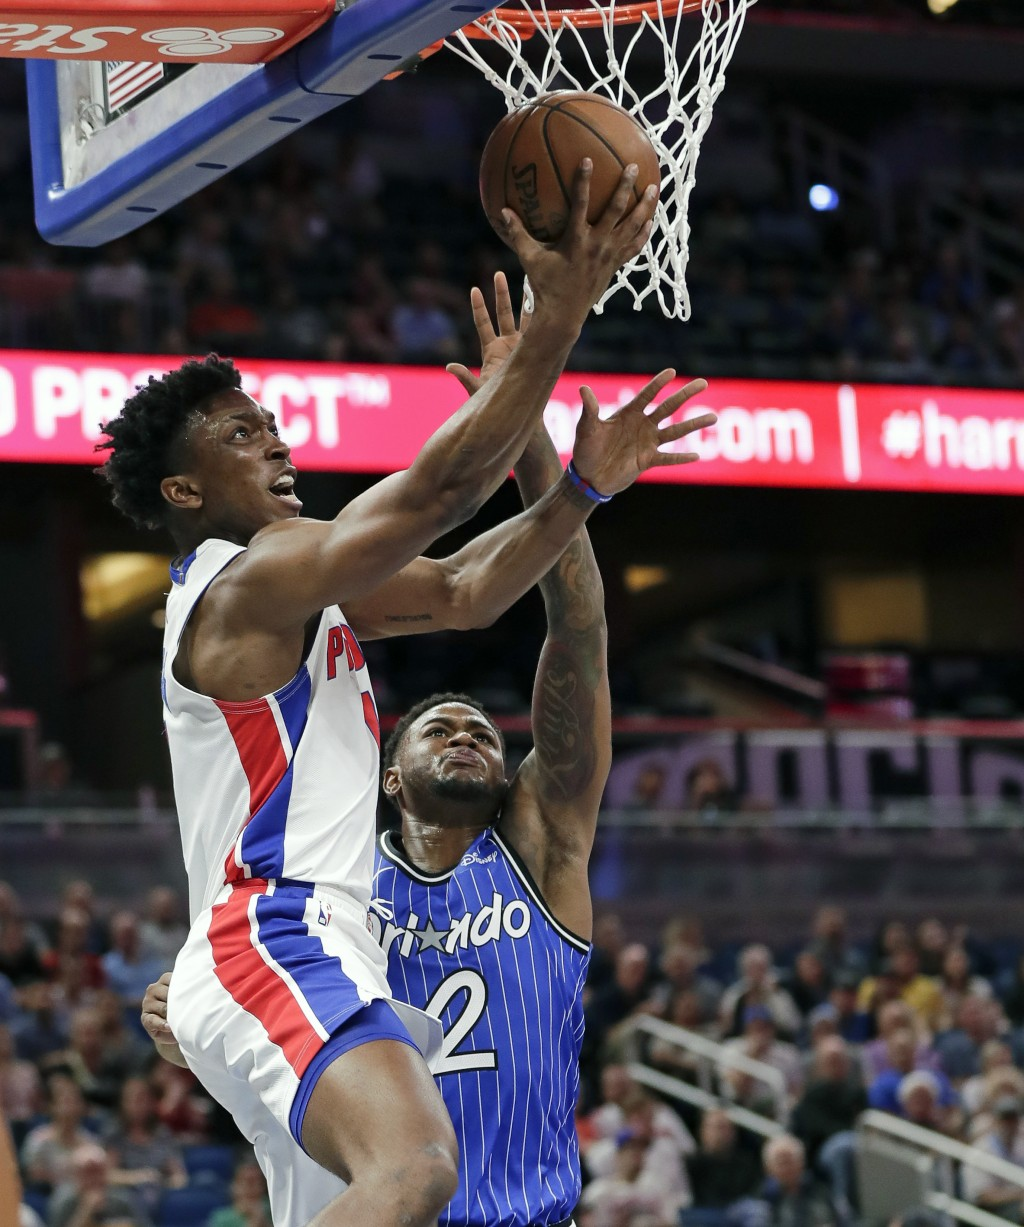 Detroit Pistons' Stanley Johnson, left, goes up for a shot past Orlando Magic's Jarell Martin (2) during the first half of an NBA basketball game, Wed